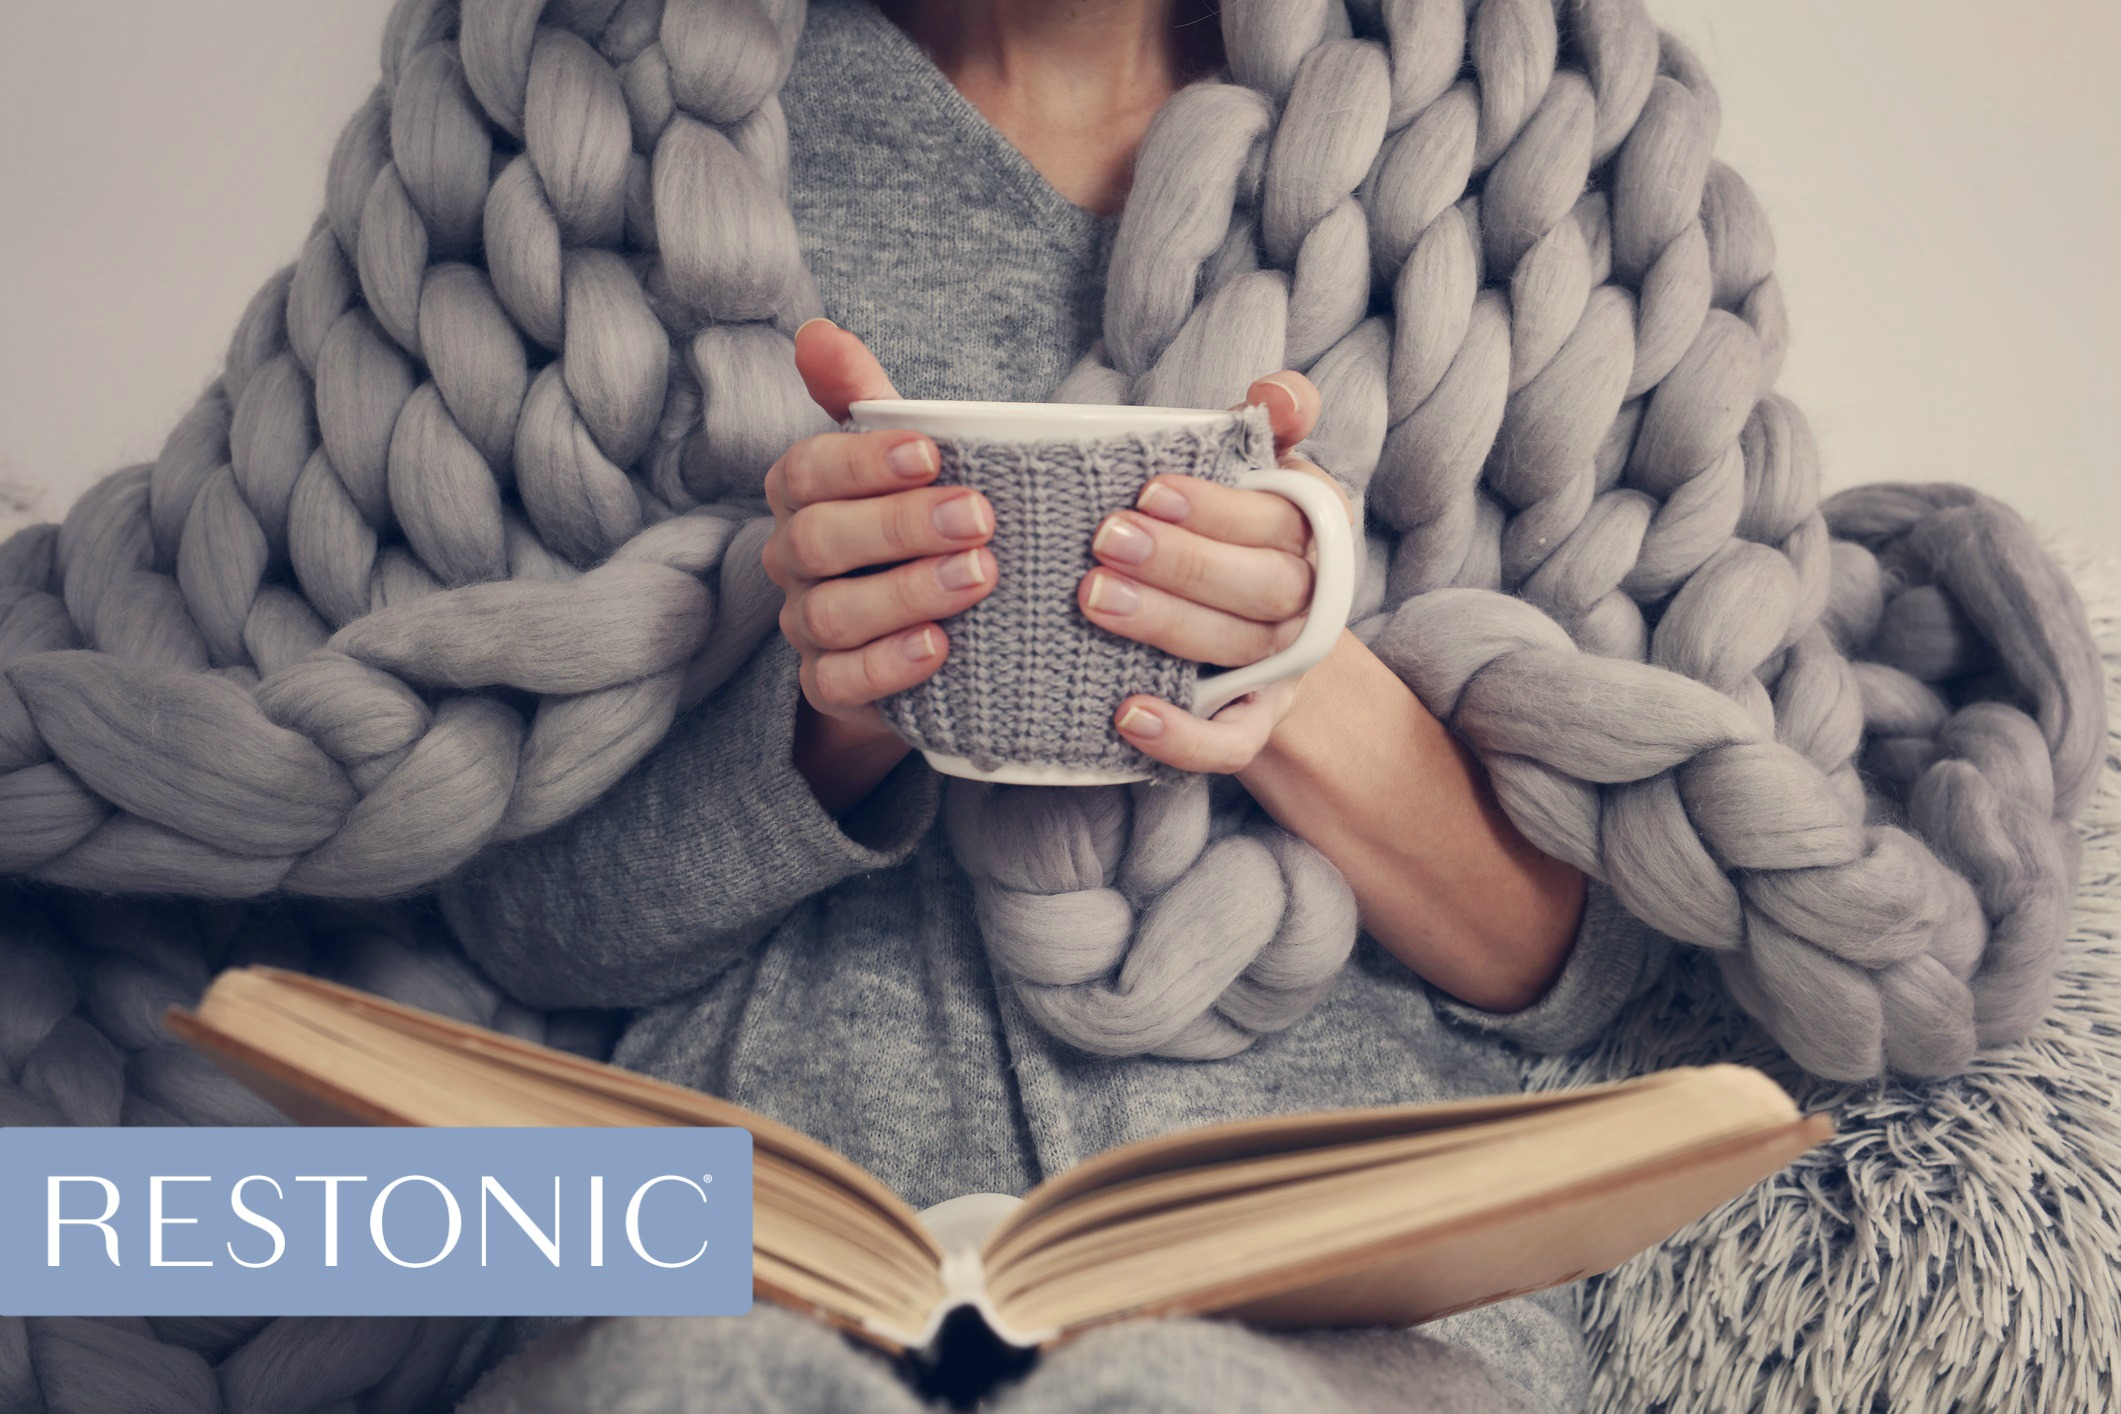 Woman wrapped in a cozy blanket, reading a book, and holding a cup as she readies herself for a great night of sleep.